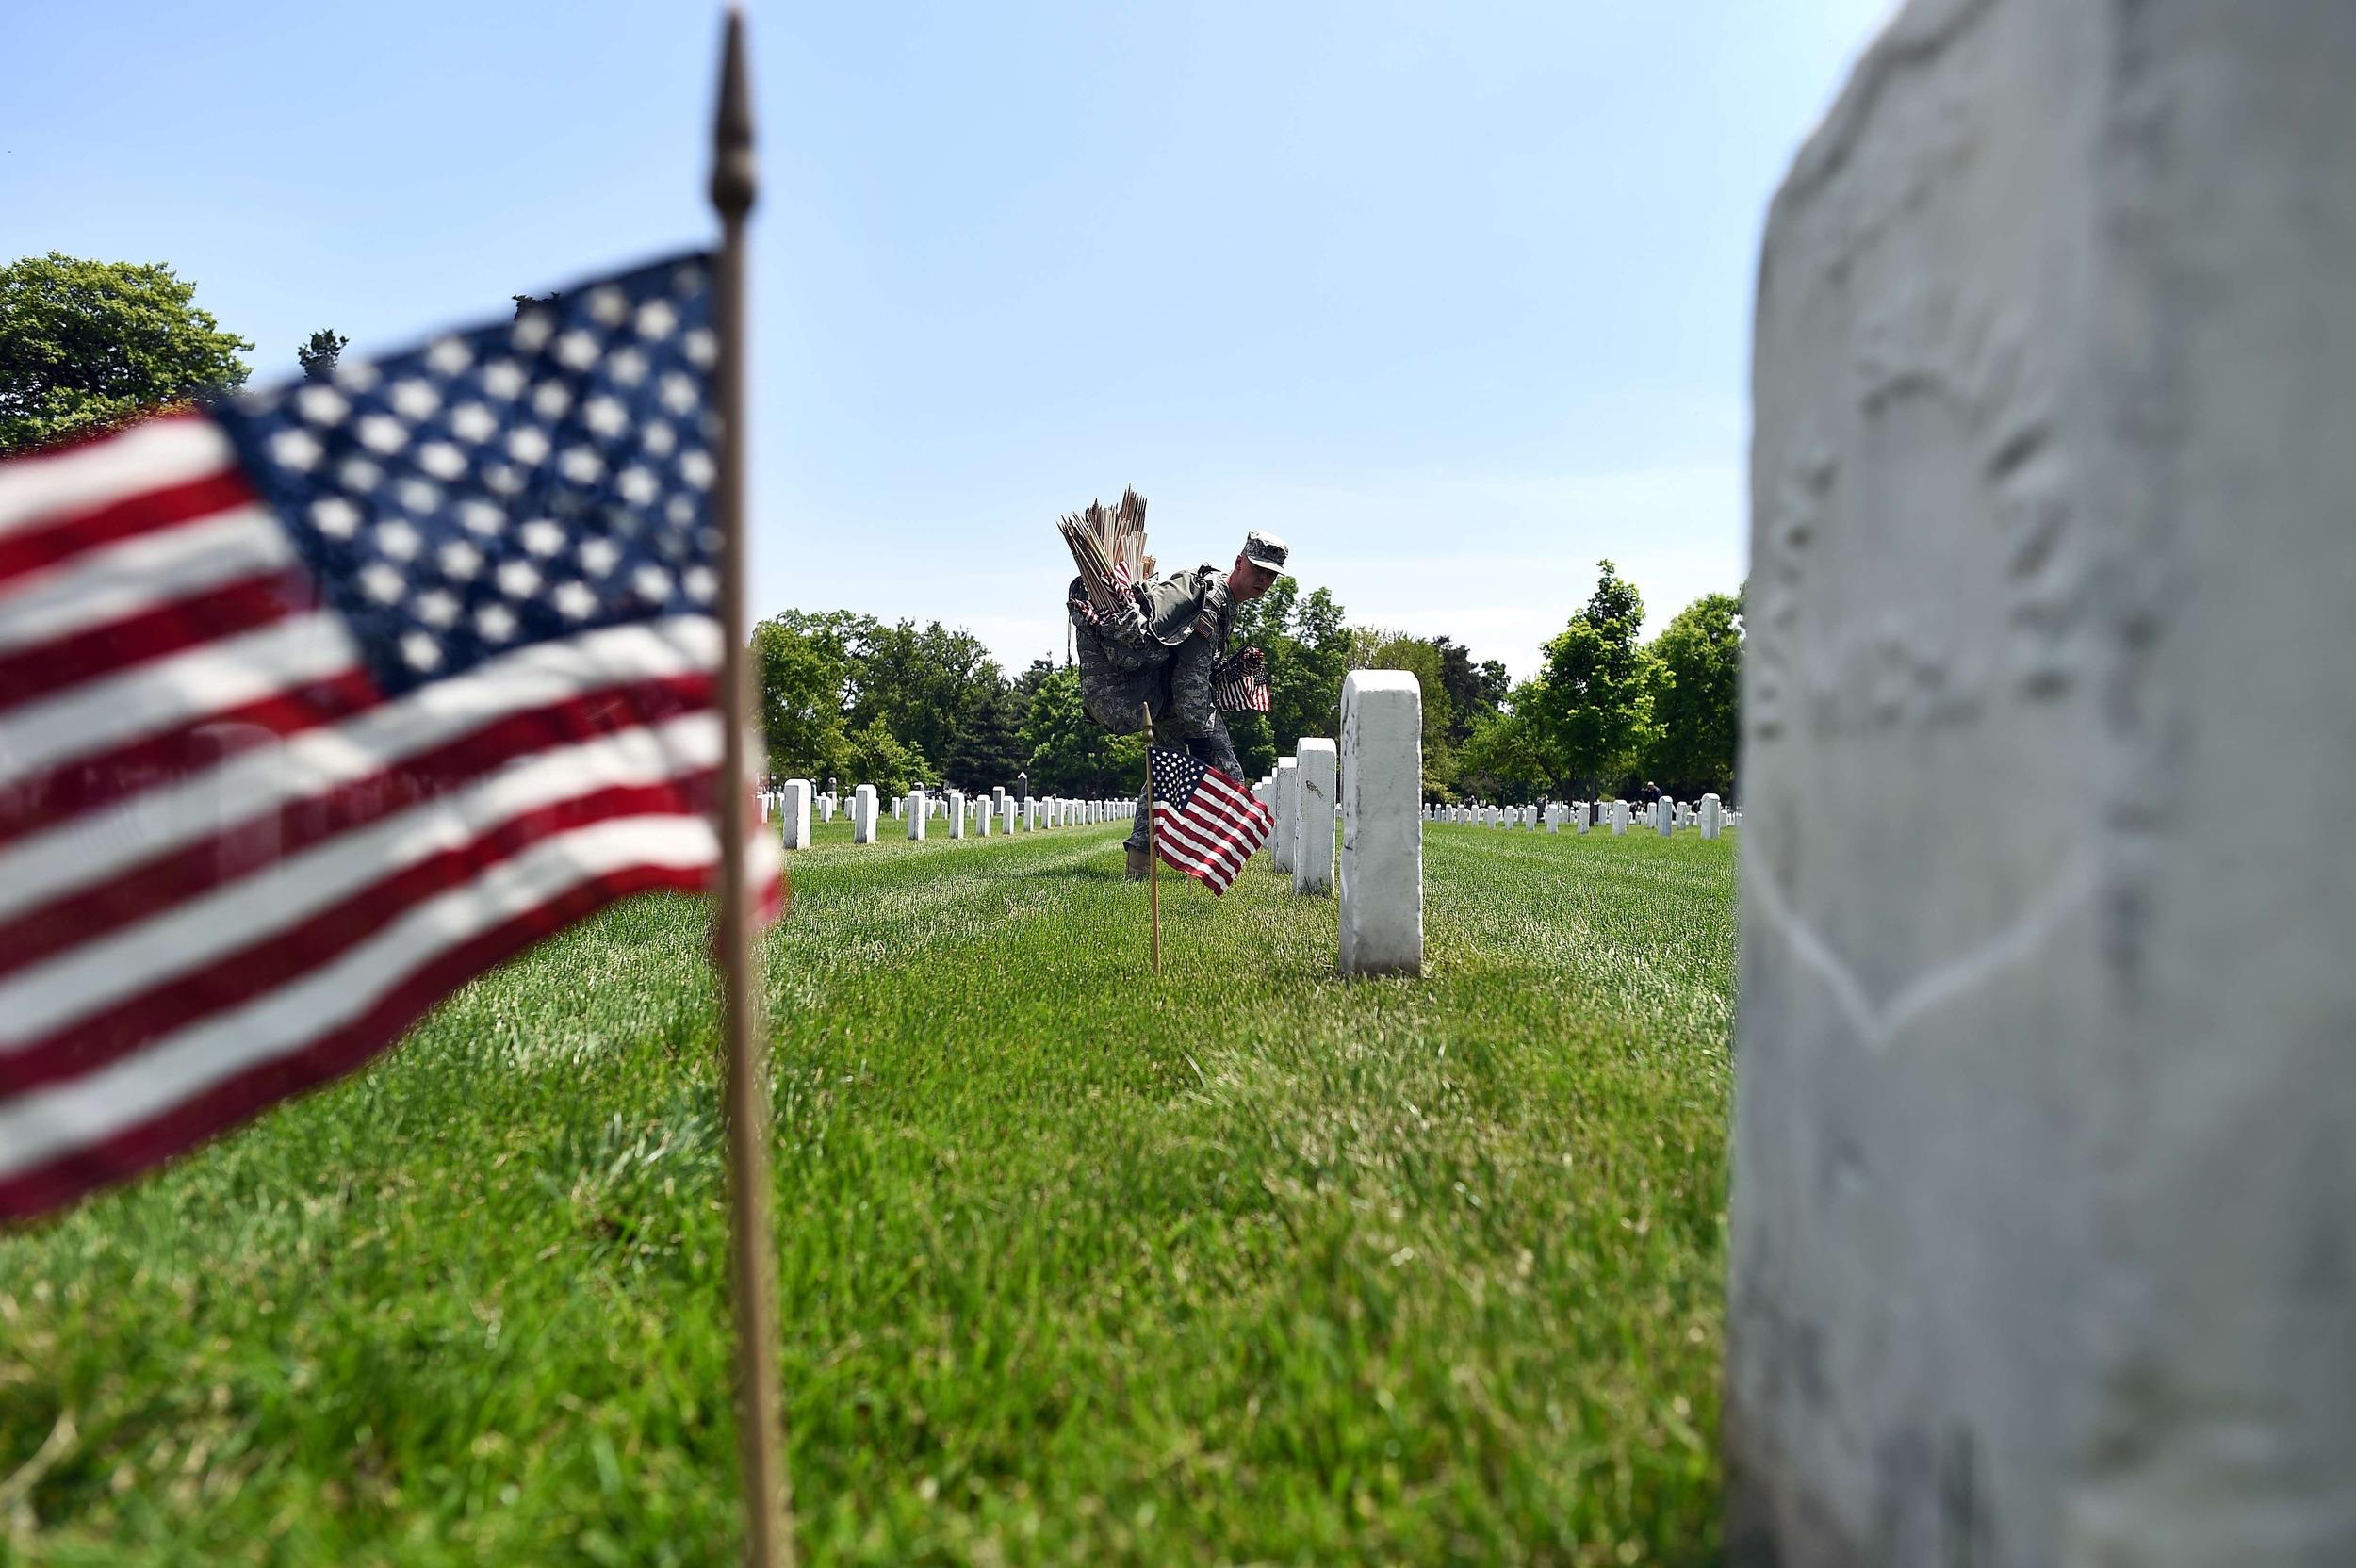 Image: US-MEMORIAL-DAY-CEMETERY-FLAGS